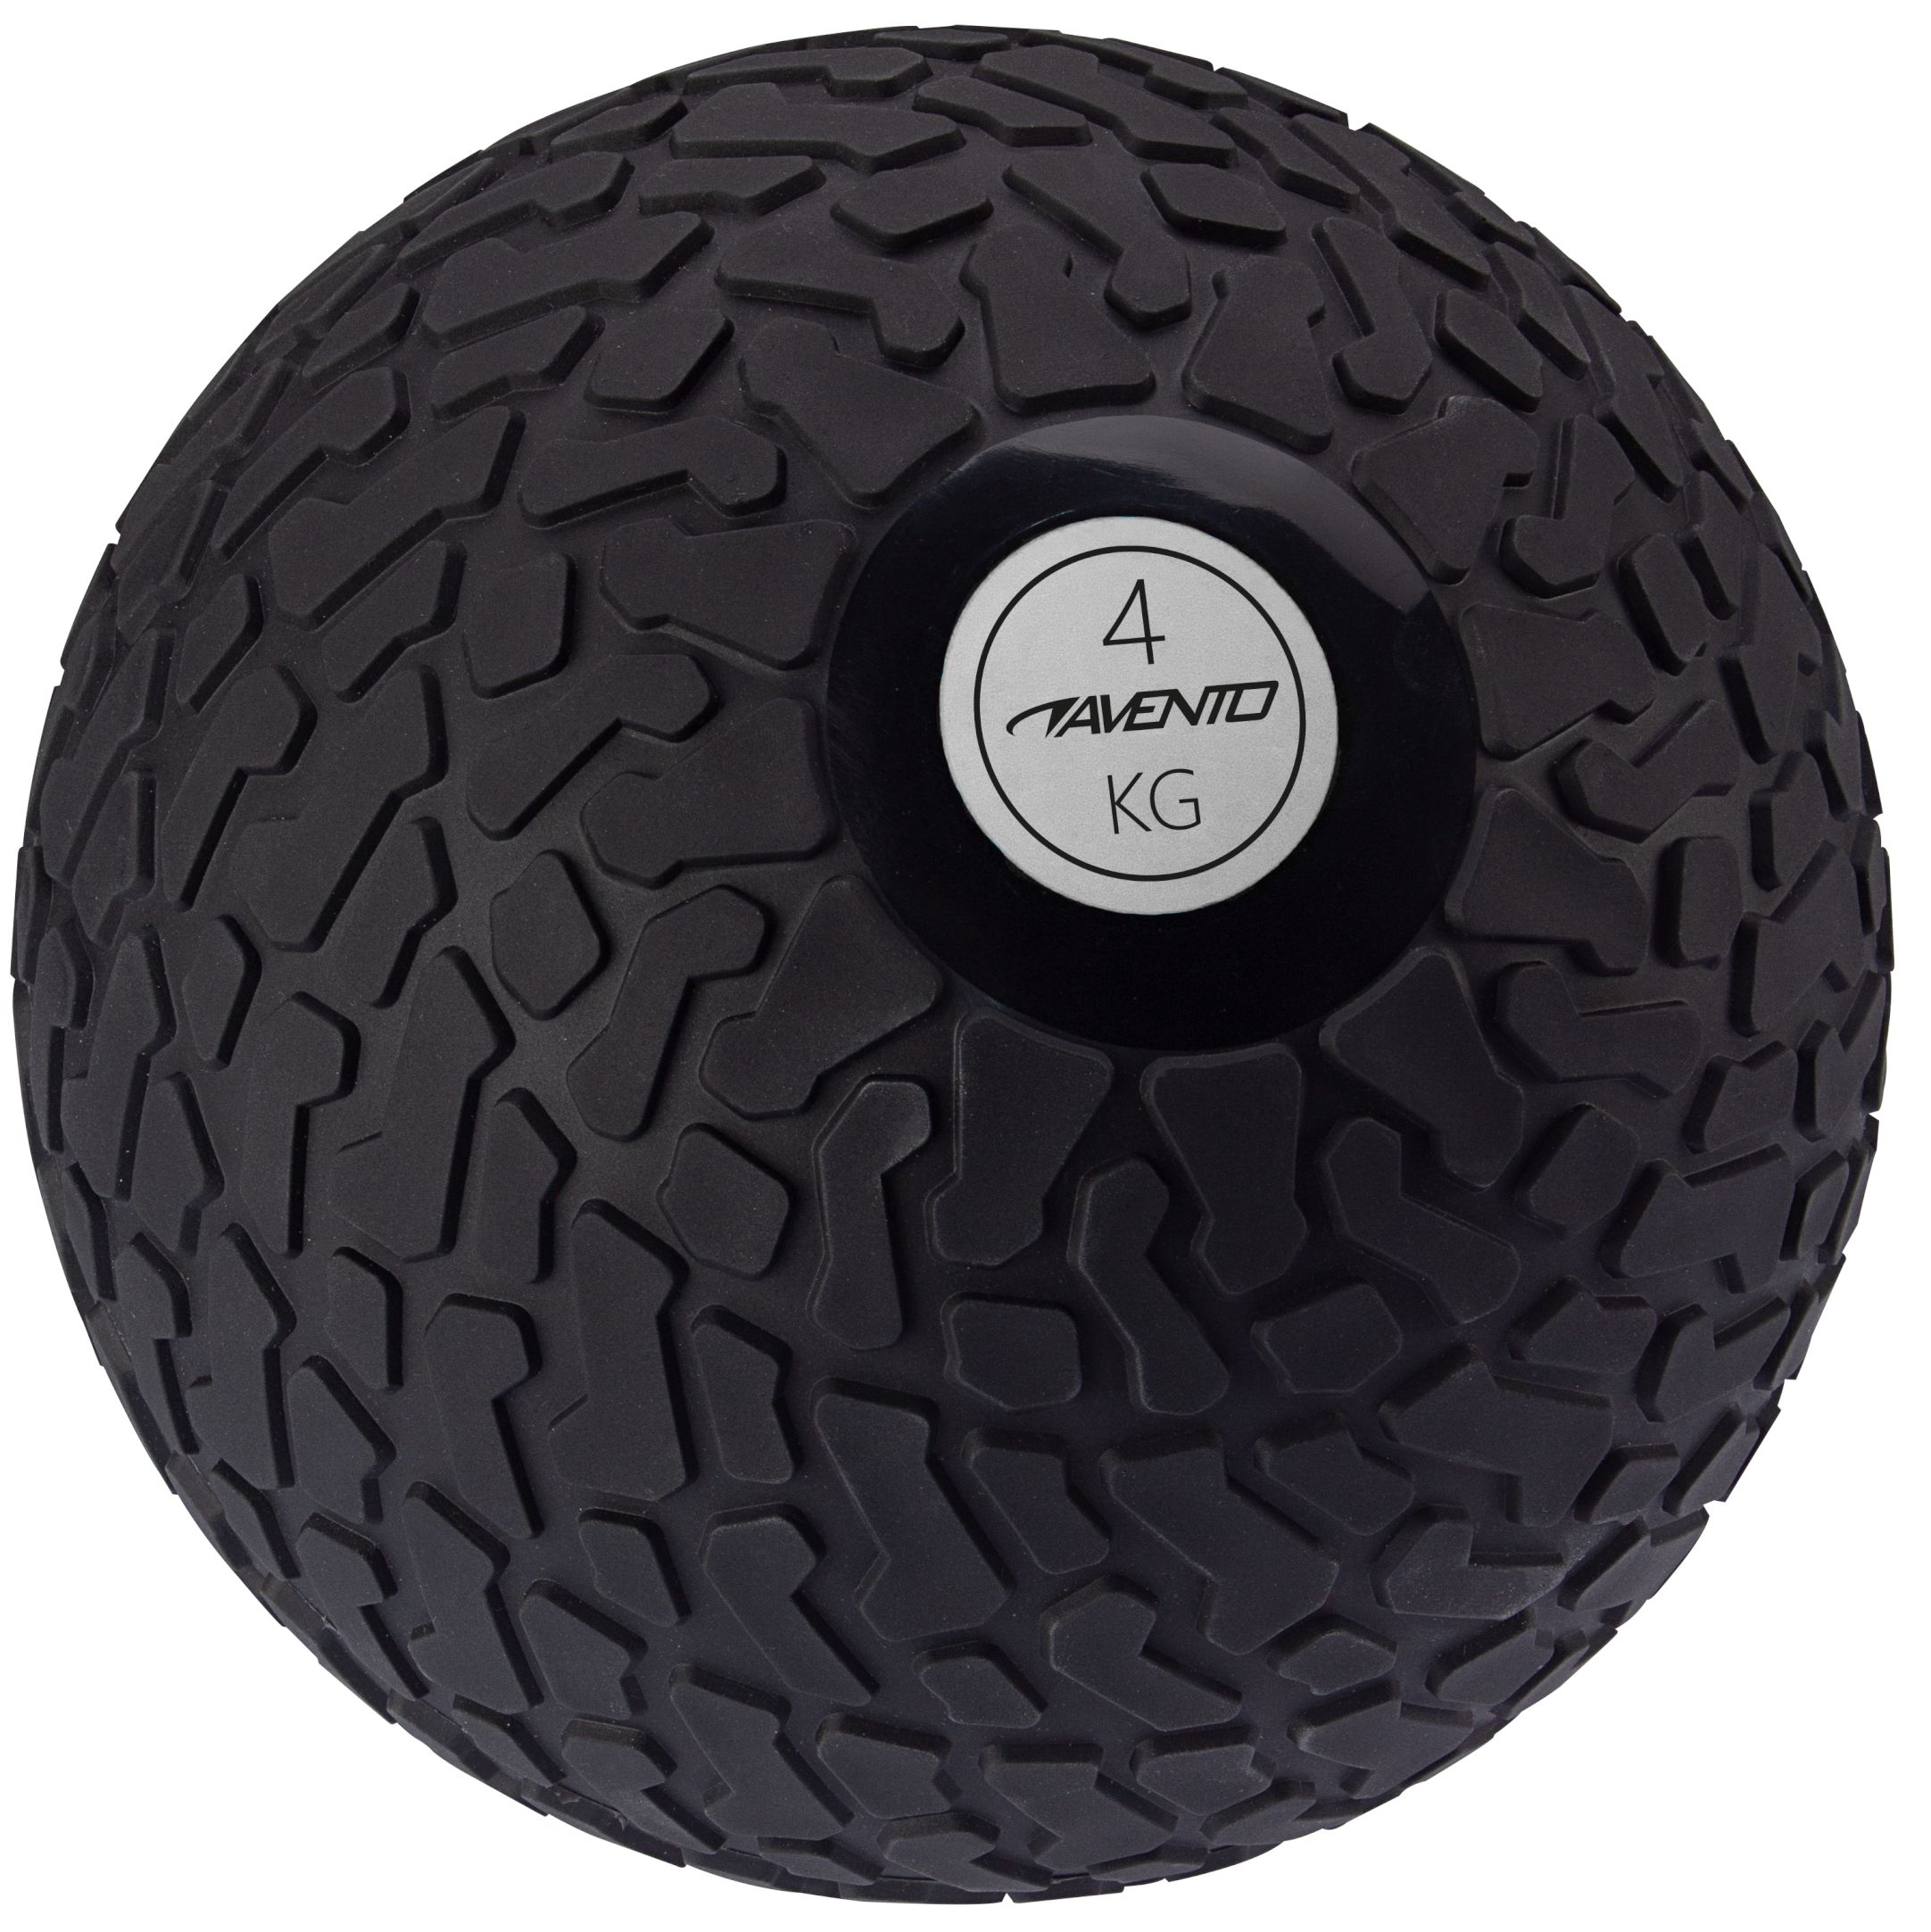 Minge Slam Ball Textured, 4 Kg